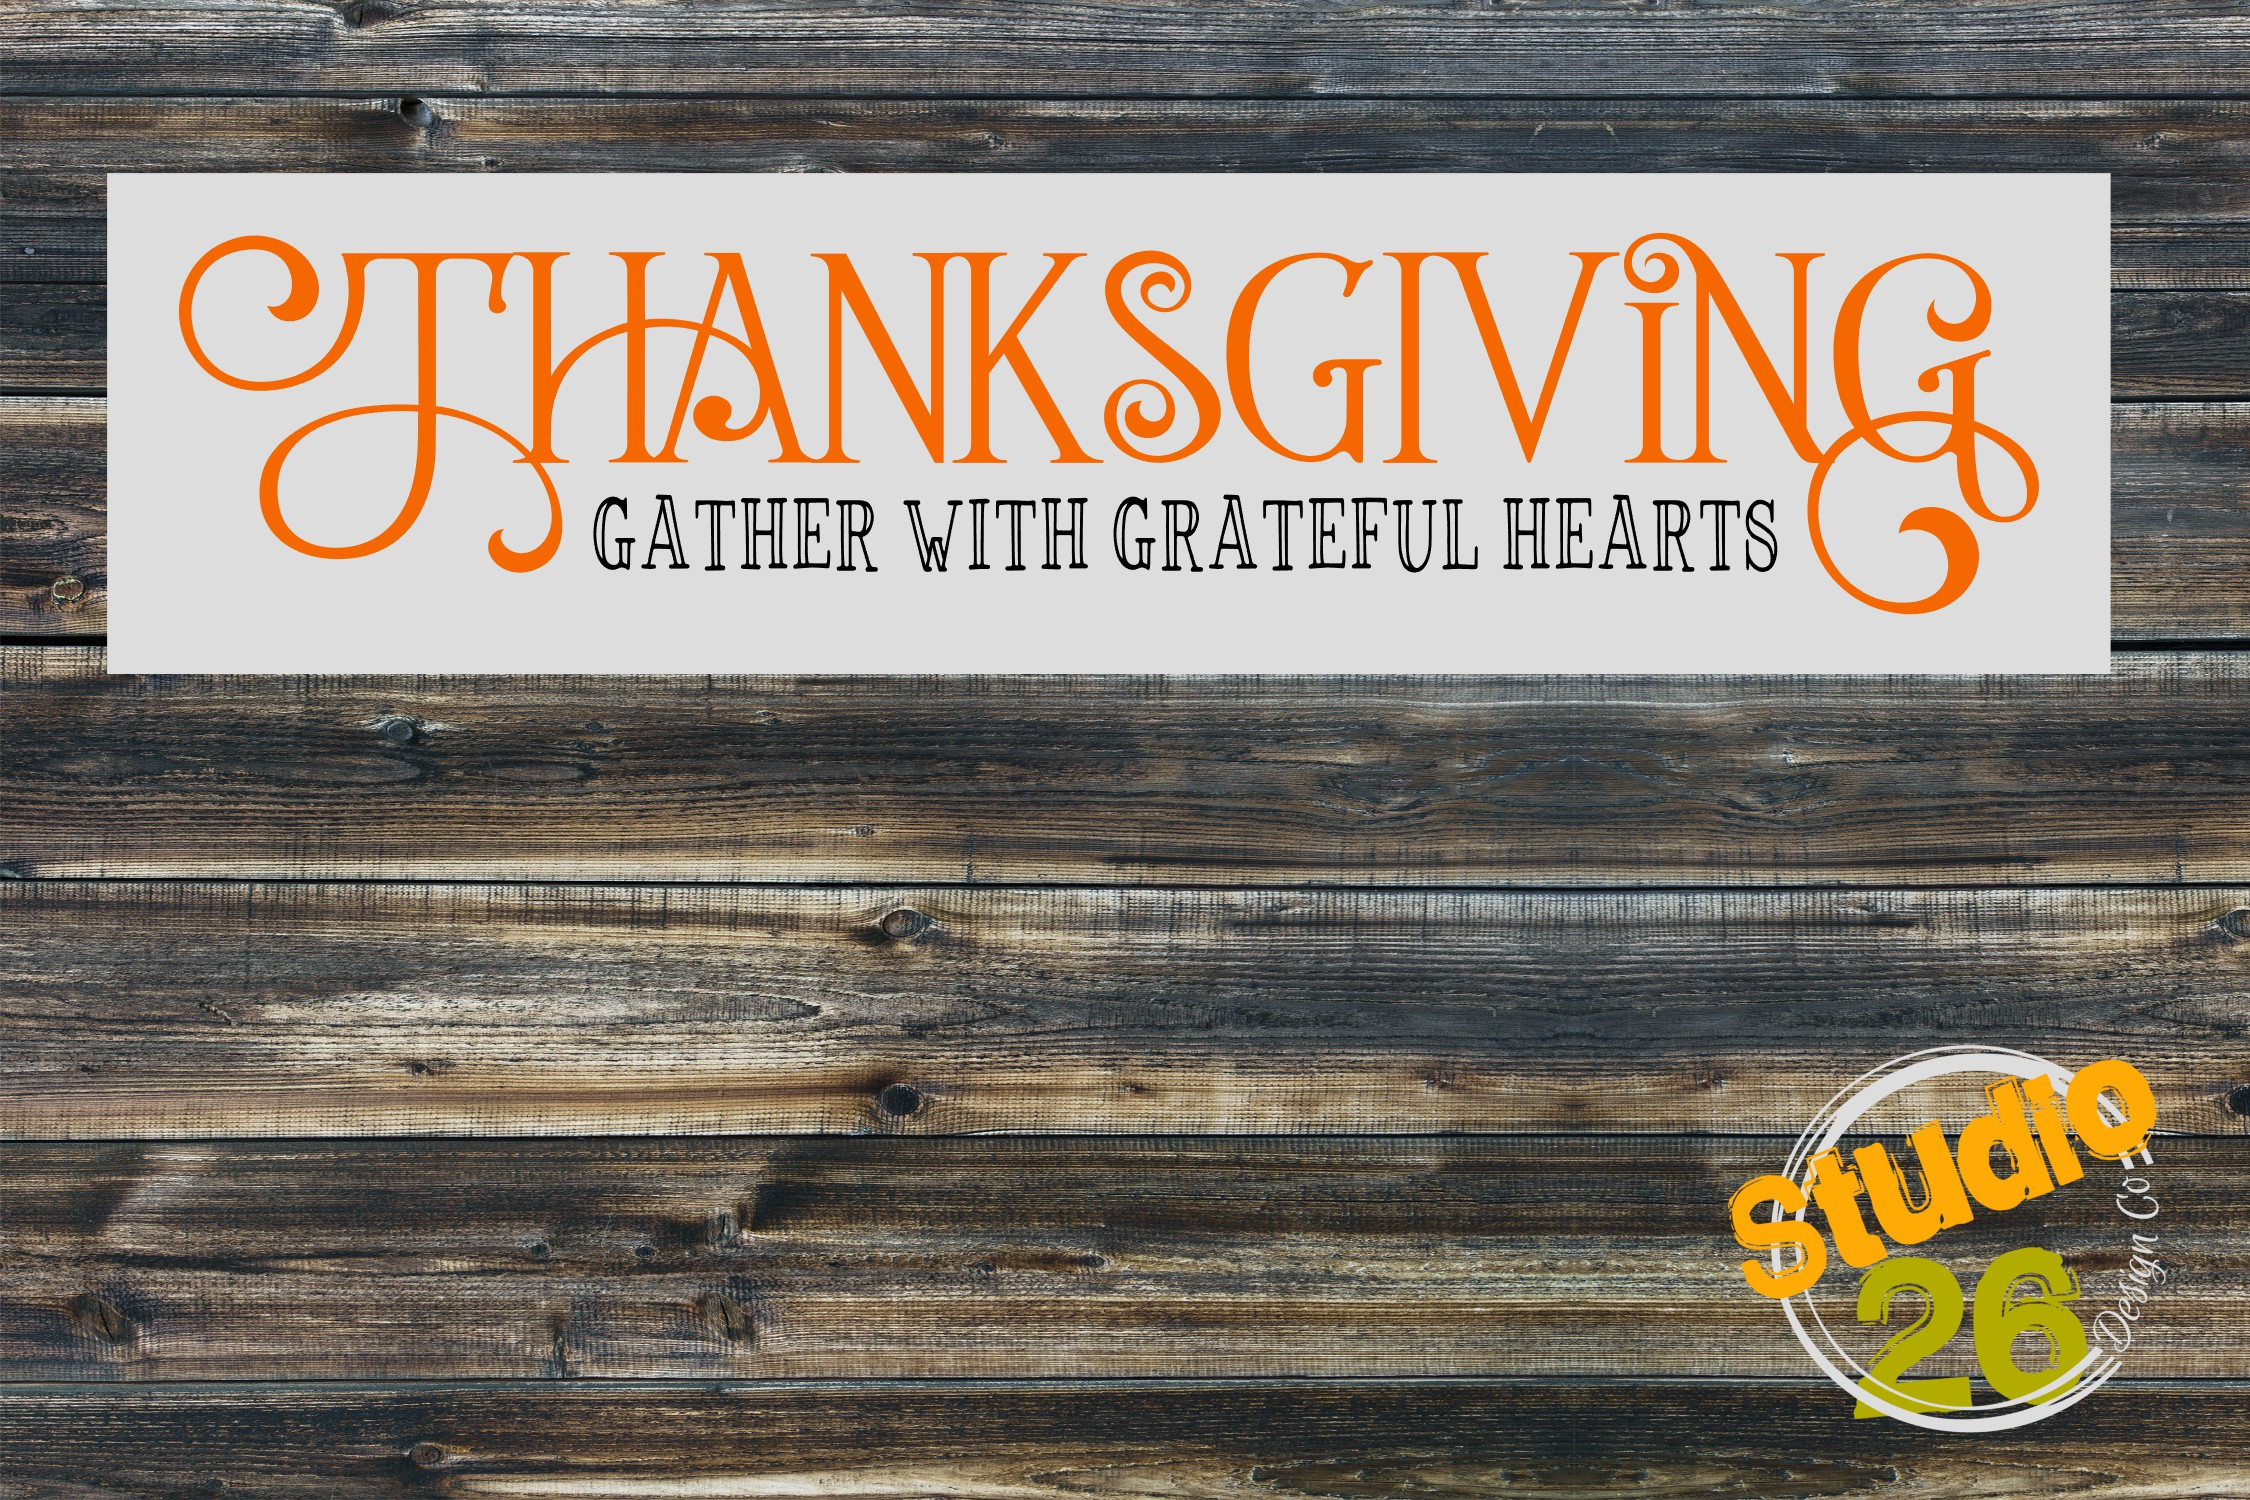 Thankgiving SVG - Gather With Grateful Hearts SVG - 6x24